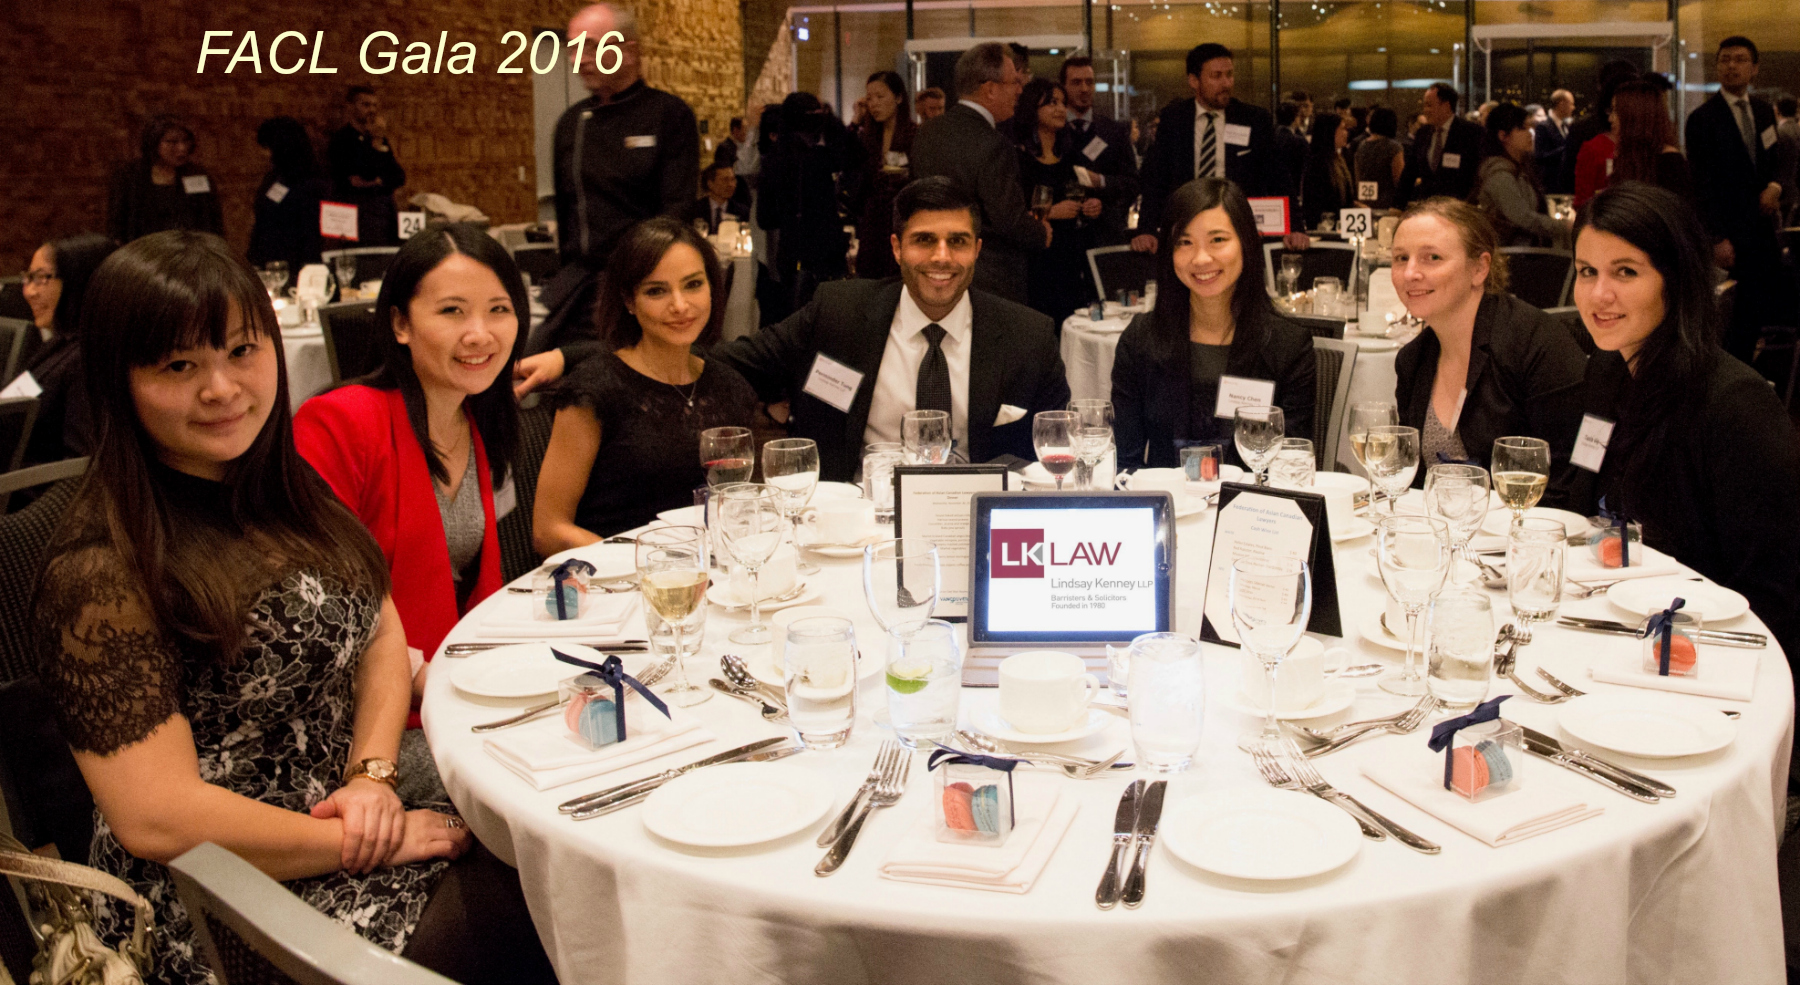 2016 FACL Gala - Lindsay Kenney LLP Table